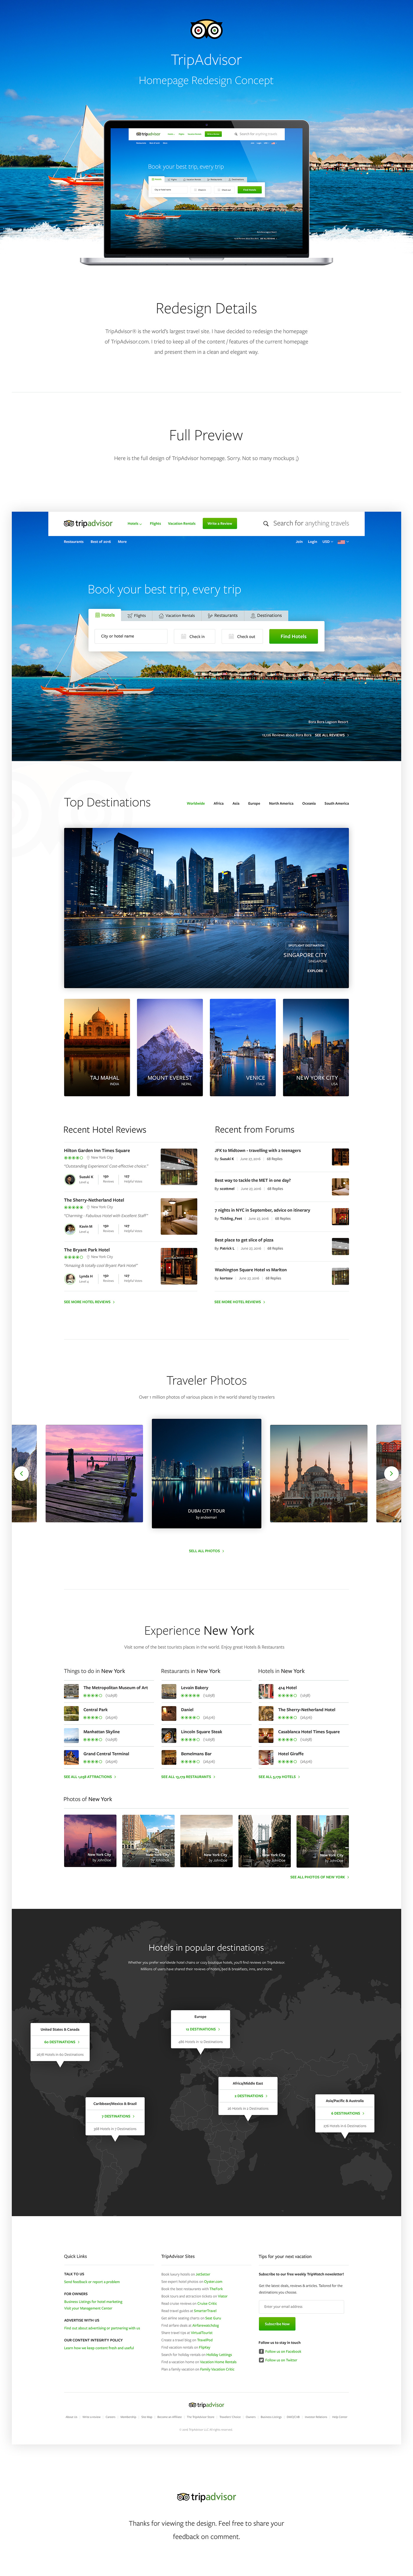 TripAdvisor Redesign on Behance | web design | Pinterest | Plantas